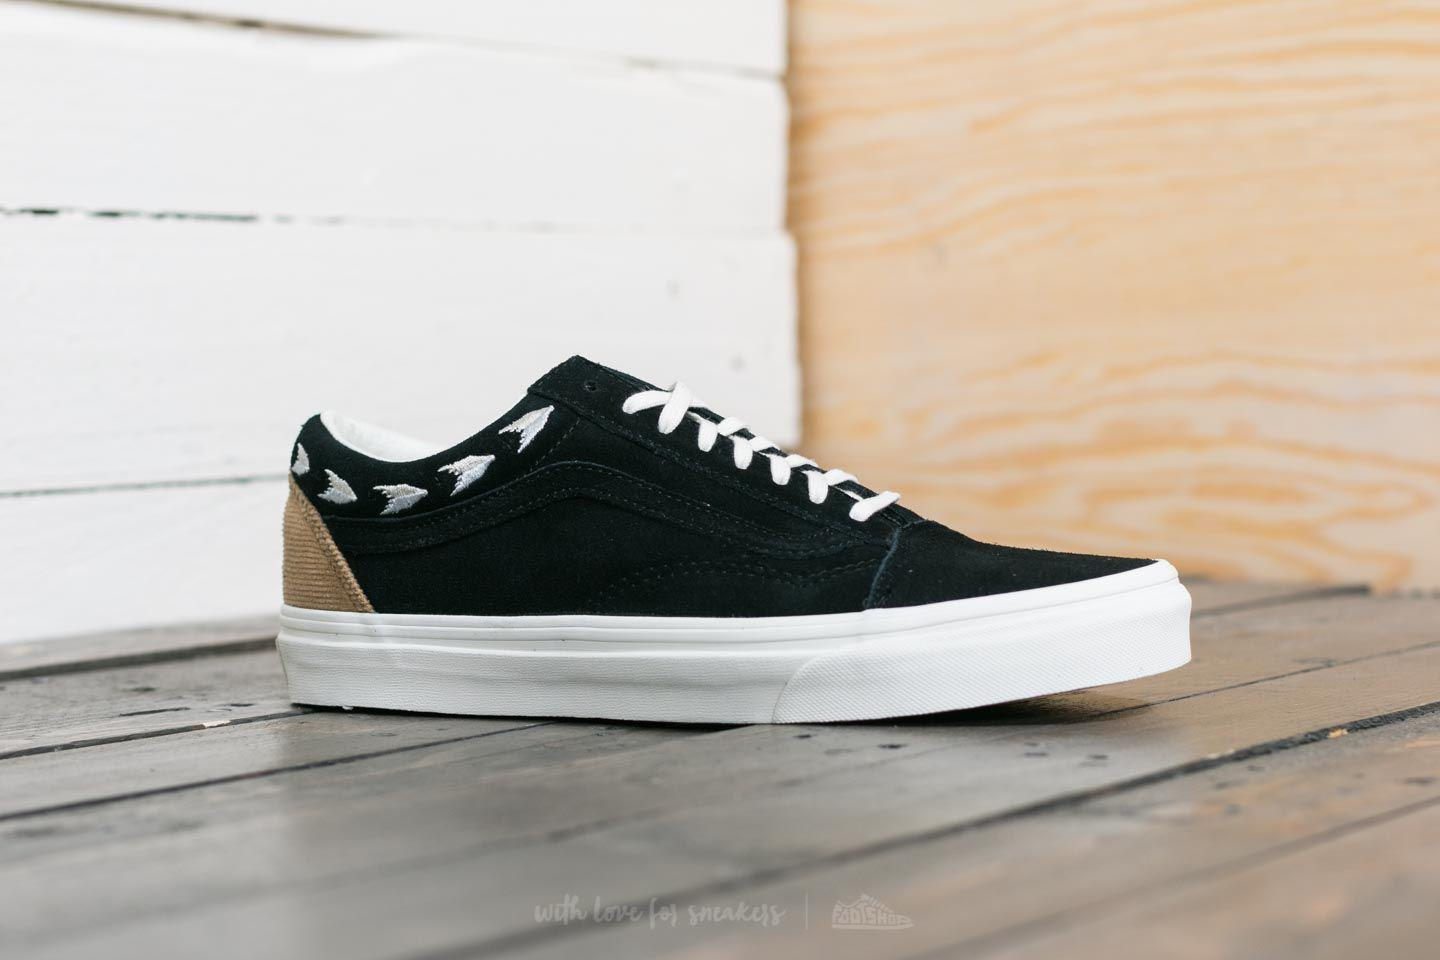 Lyst - Vans Old Skool (native Embroidery) Black  Marshmallow in Black 6c112b49e